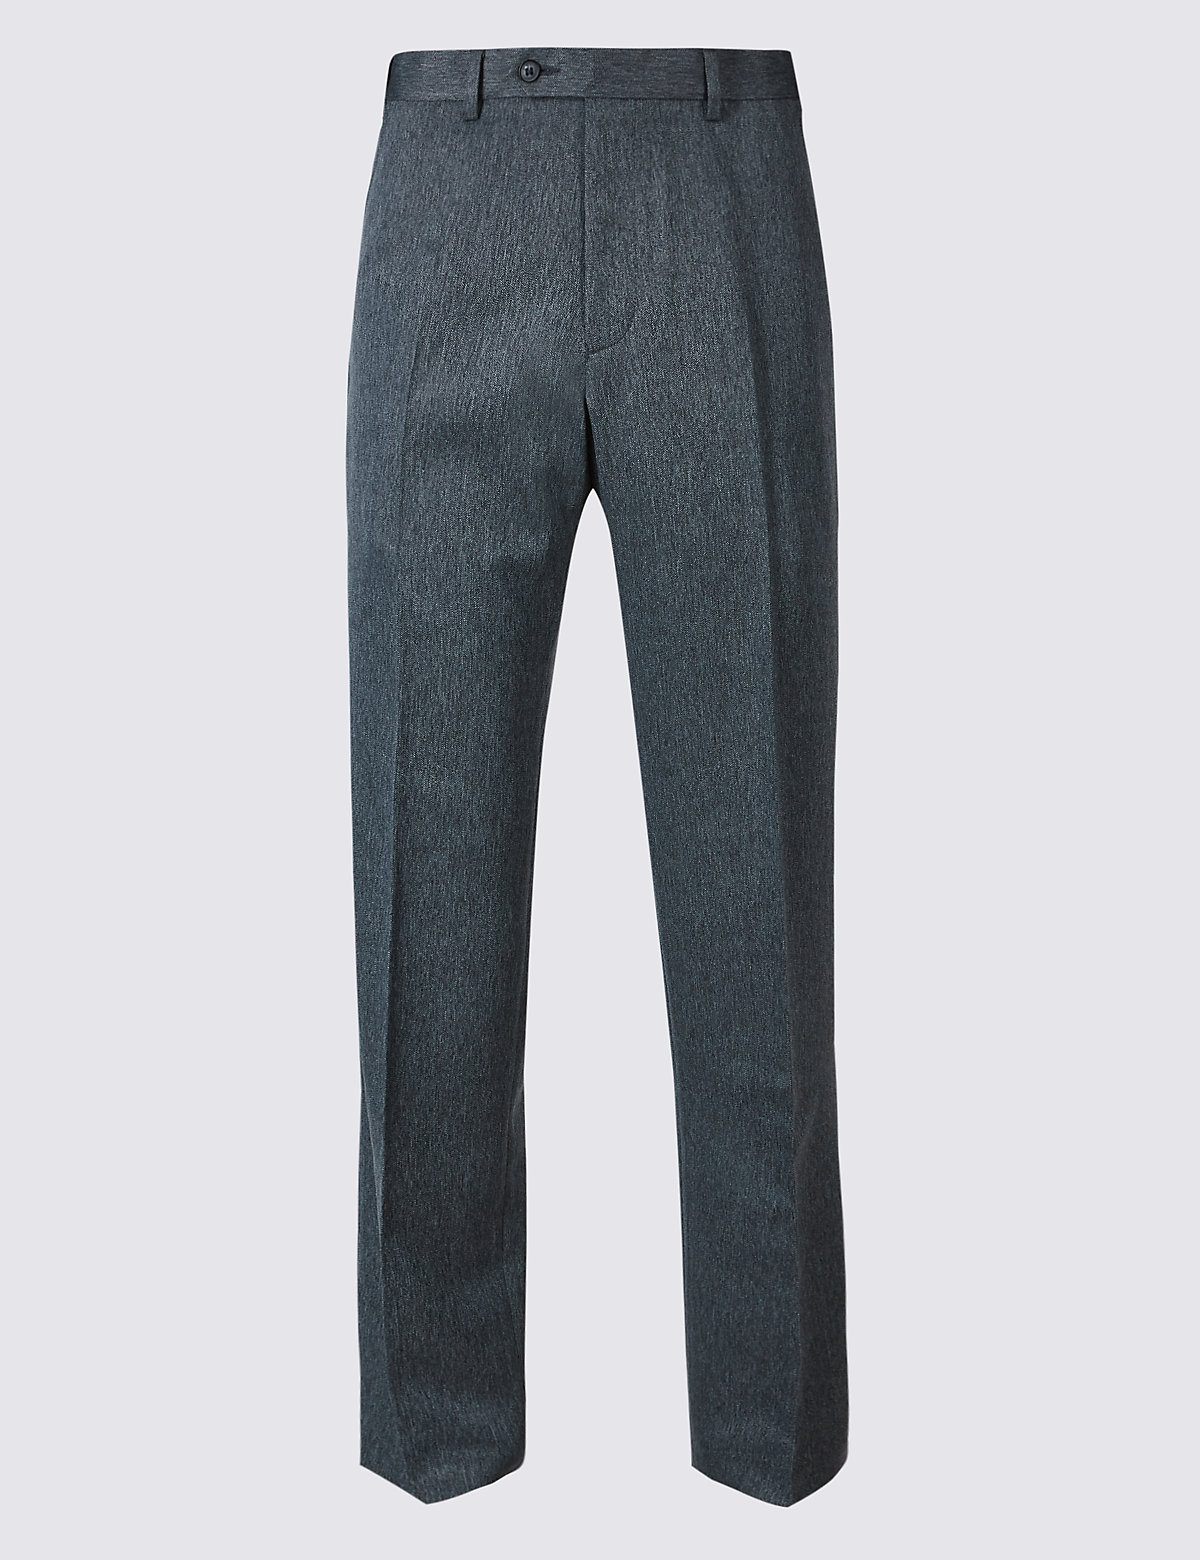 Marks & Spencer Blue Regular Fit Flat Front Trousers